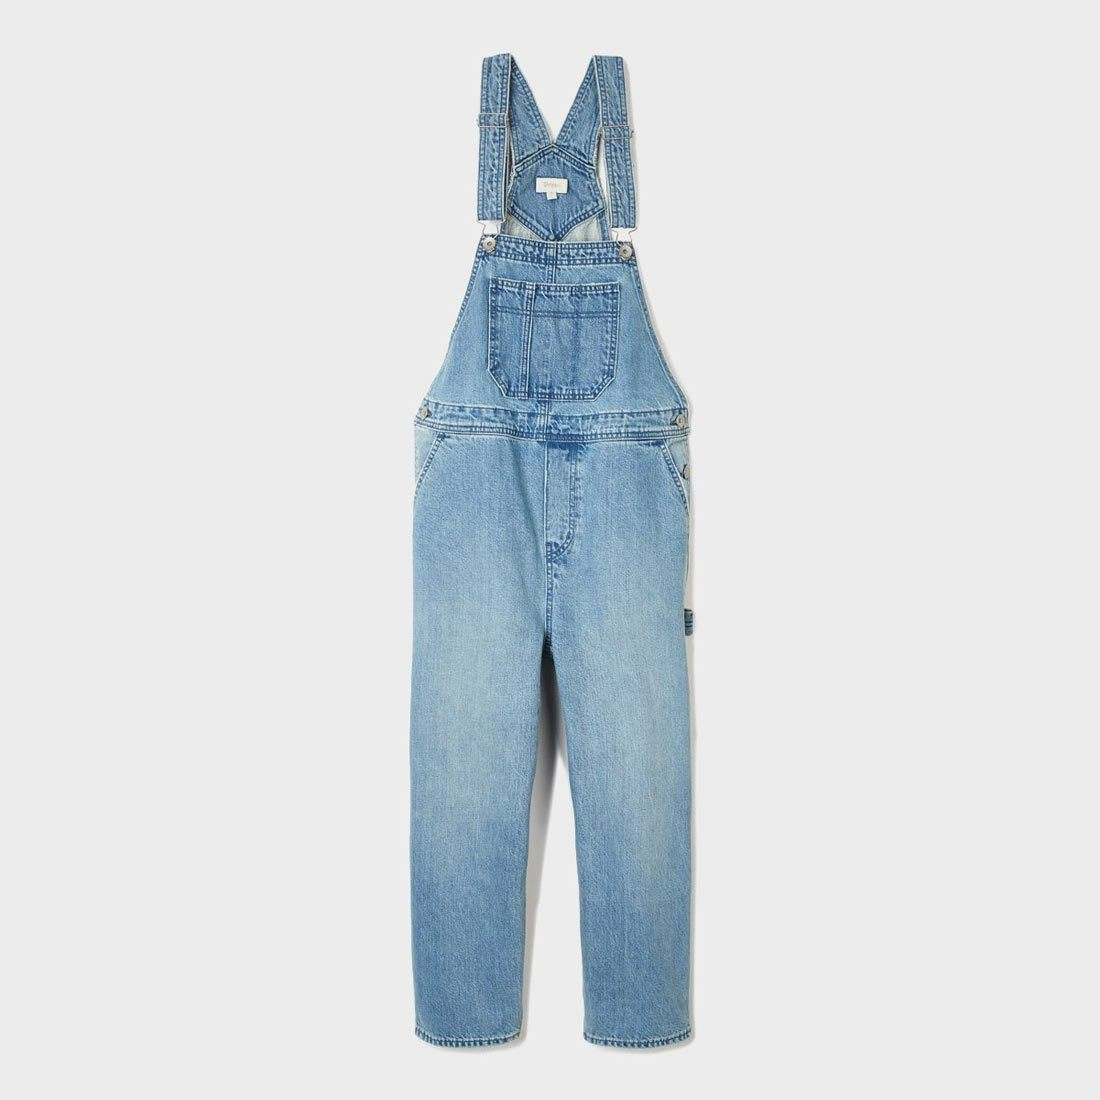 Brixton Women's Christina Crop Overall Faded Indigo